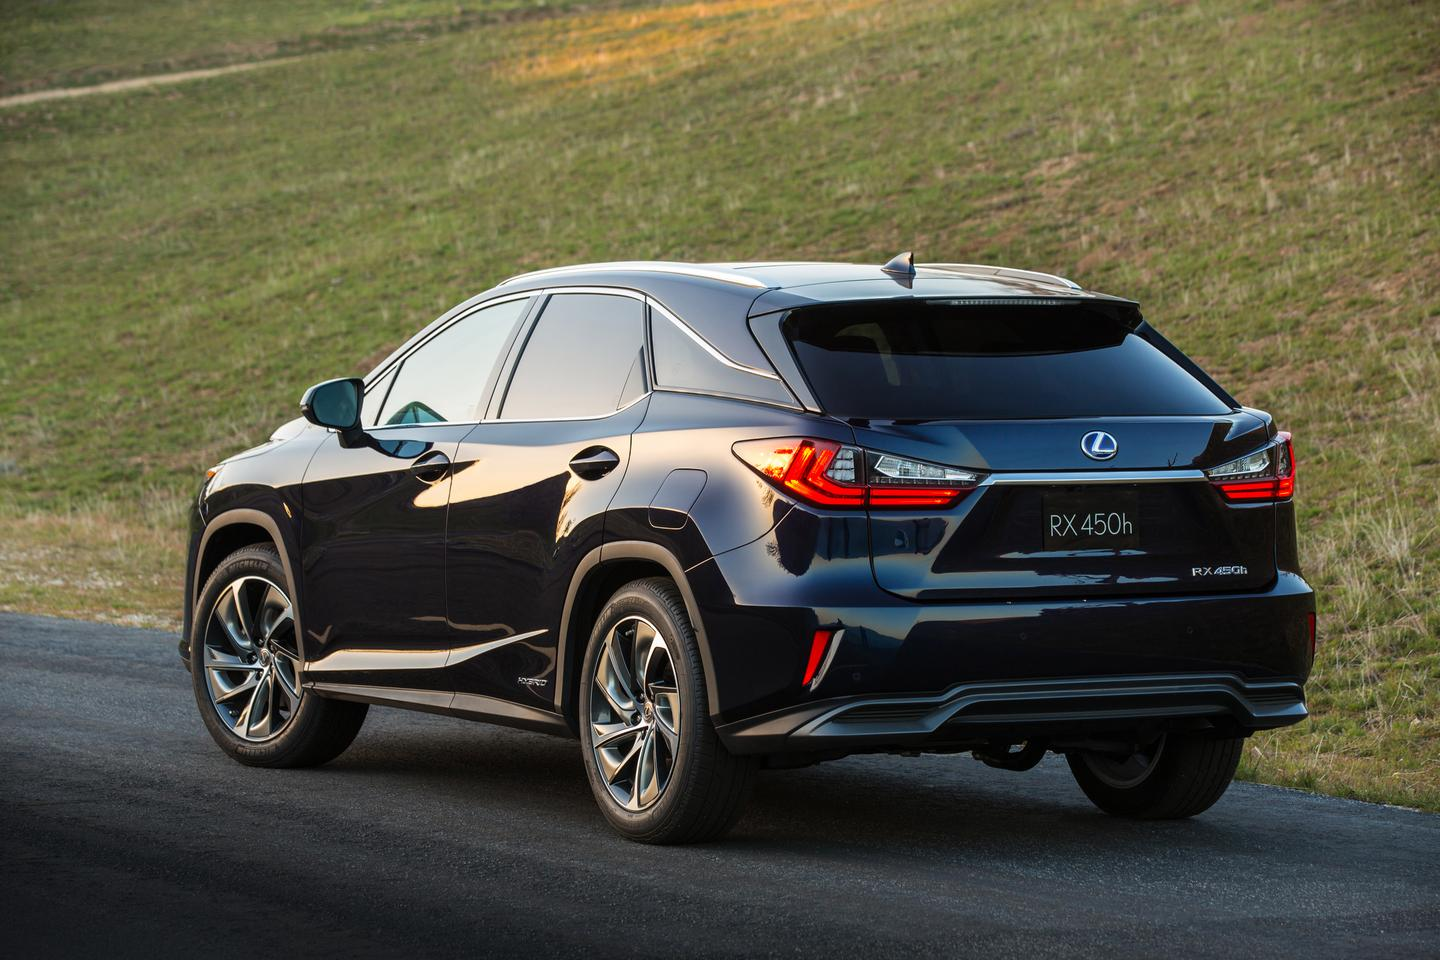 Lexus has styled the RX's rear lights to wrap around